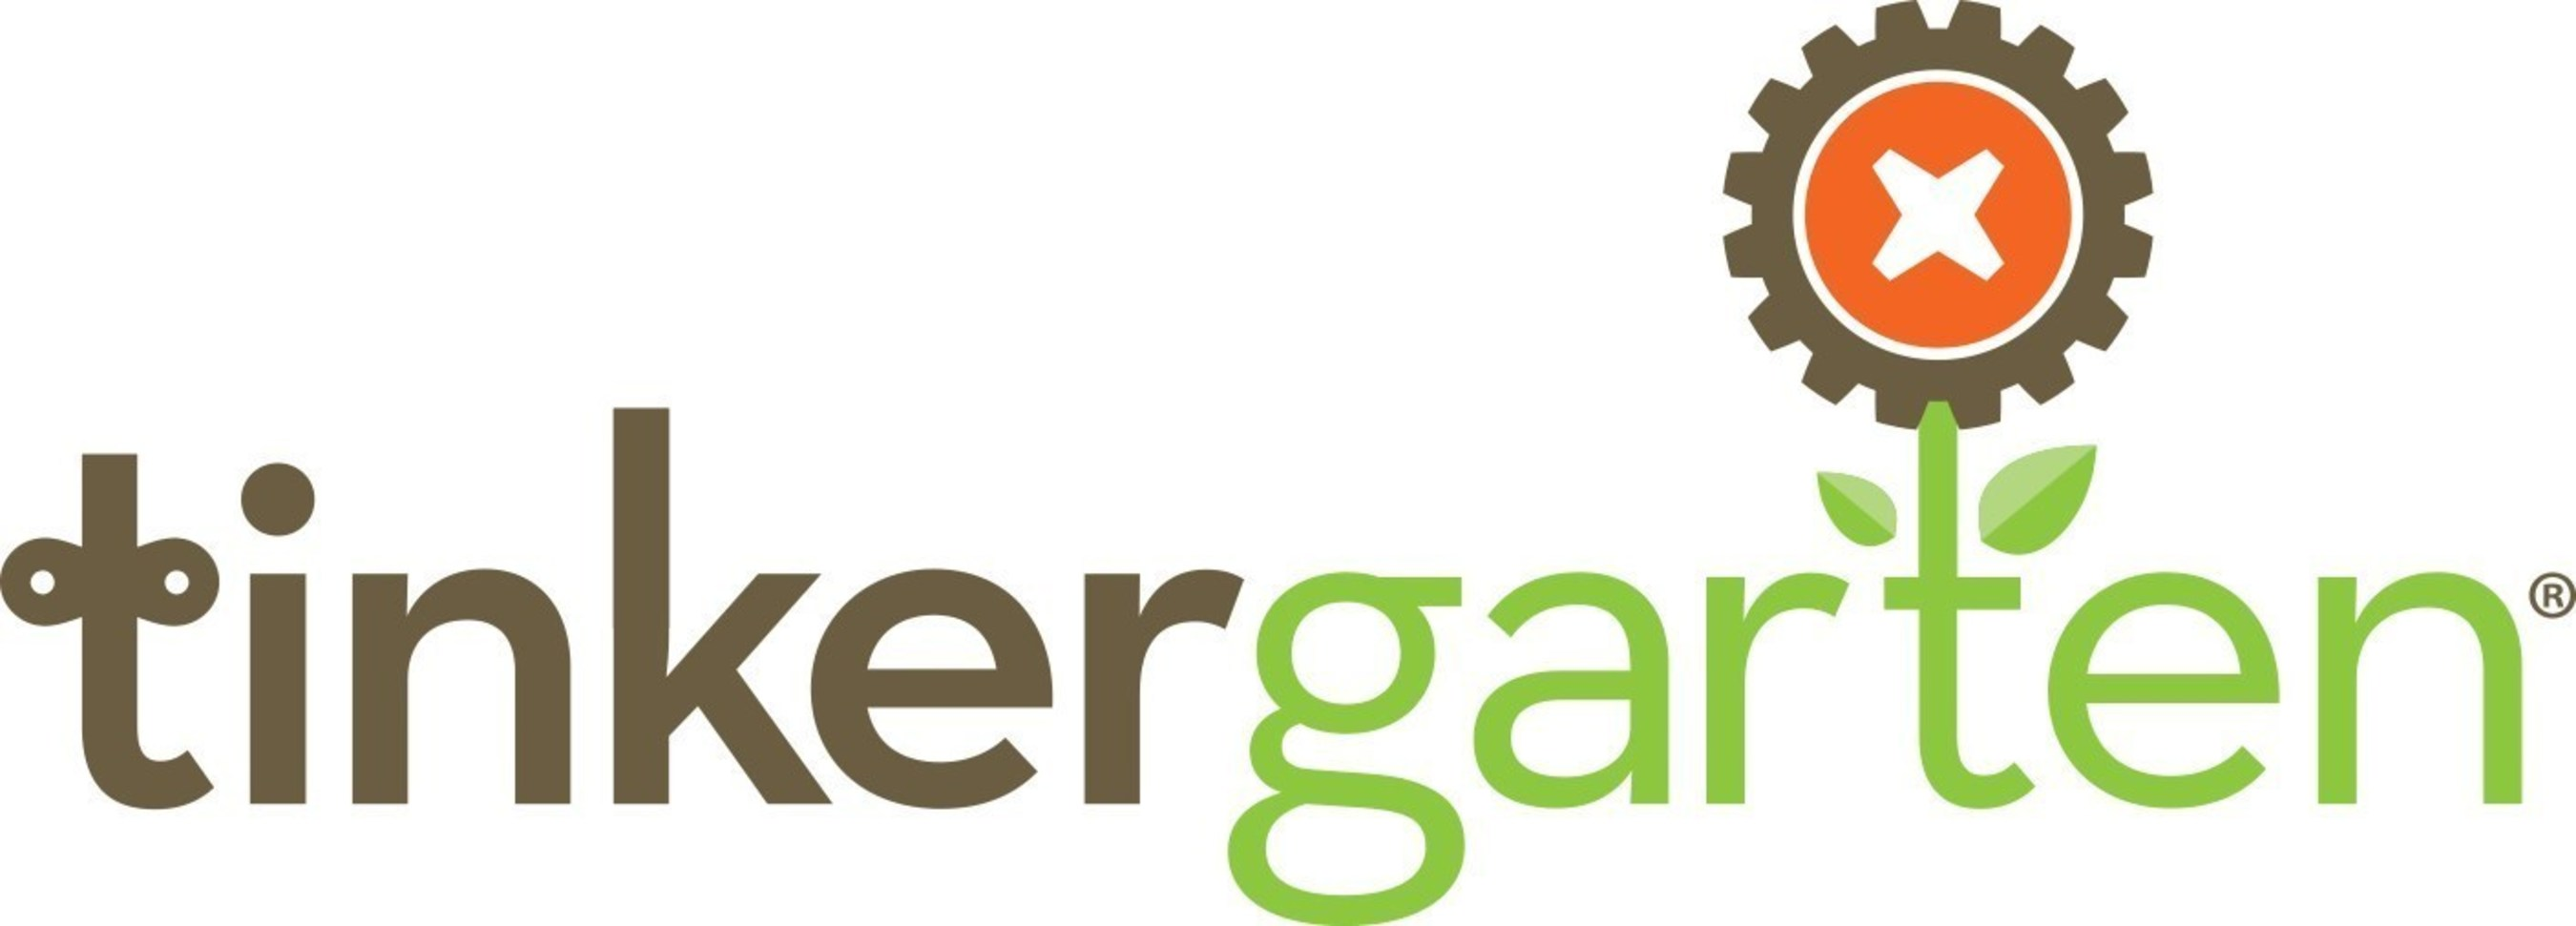 Tinkergarten(R) Fuels Expansion with $1.6m Seed Round Led by Omidyar Network